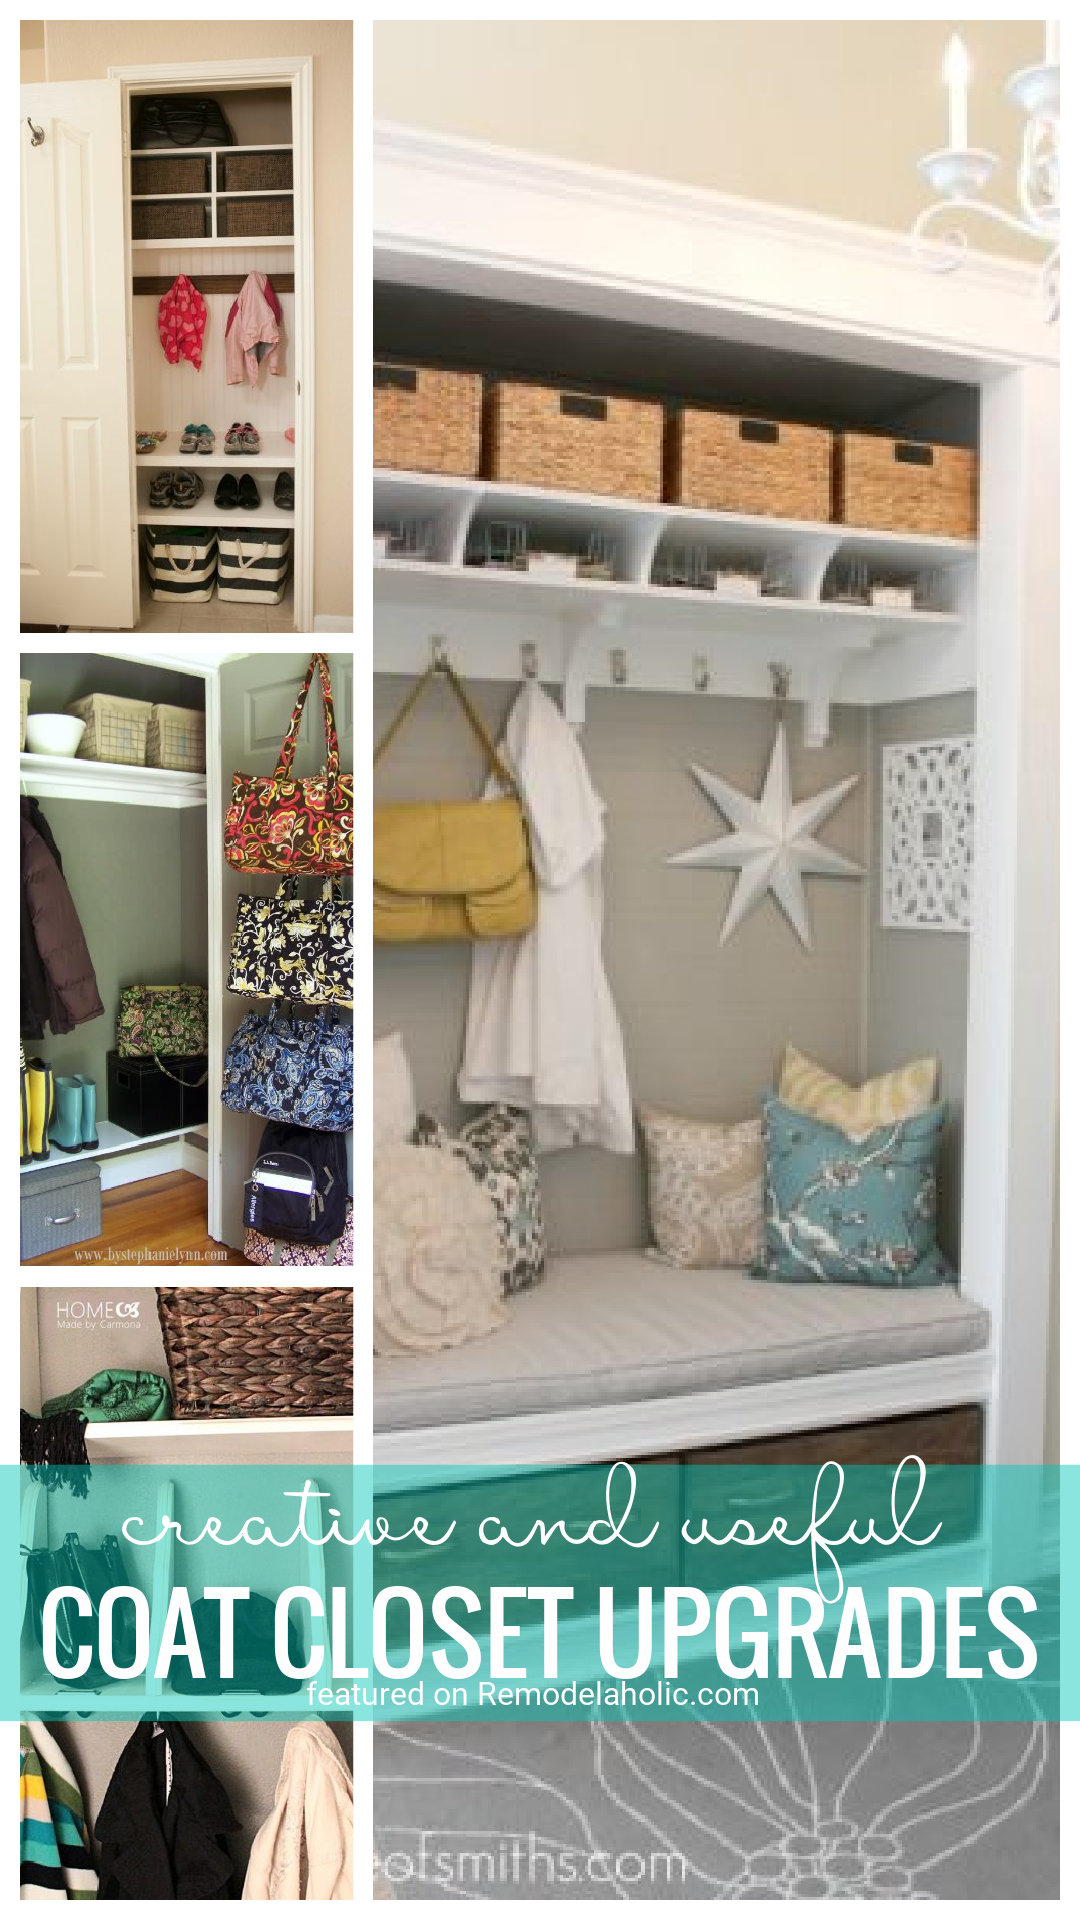 Get The Most Out Of A Small Closet With These Awesome Creative Coat Closet Upgrades That Maximize Space Featured On Remodelaholic.com